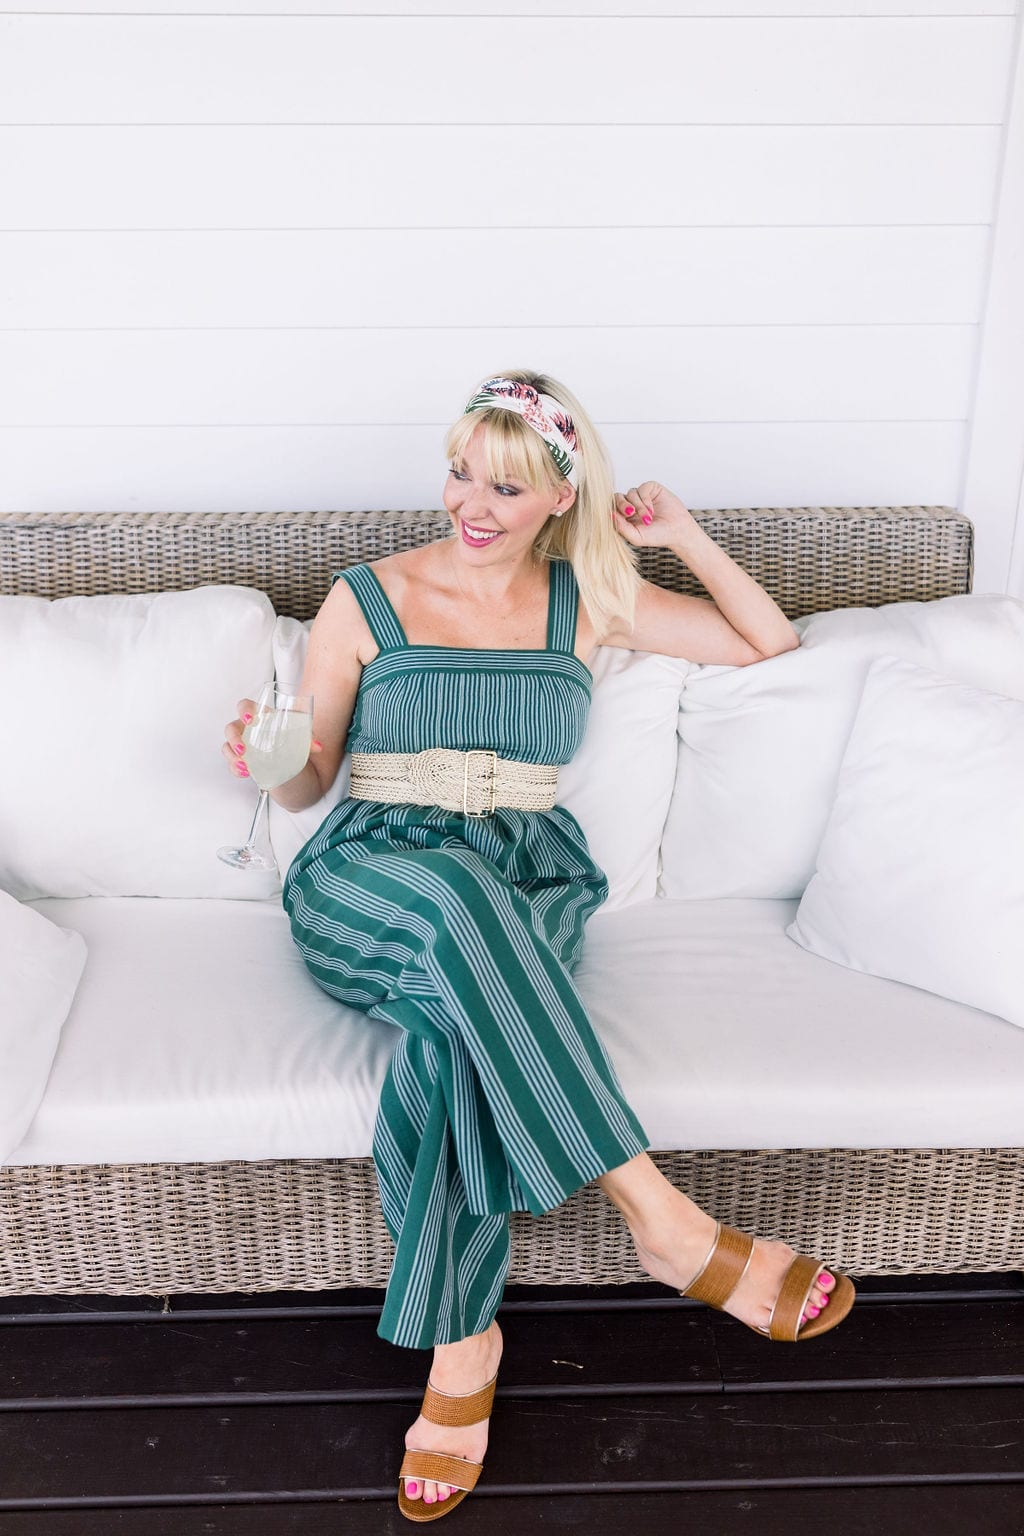 Anthropologie Headscarf in gorgeous pink and green florals. How to wear a headscarf with bangs and pair with a summer jumpsuit and brown sandals.